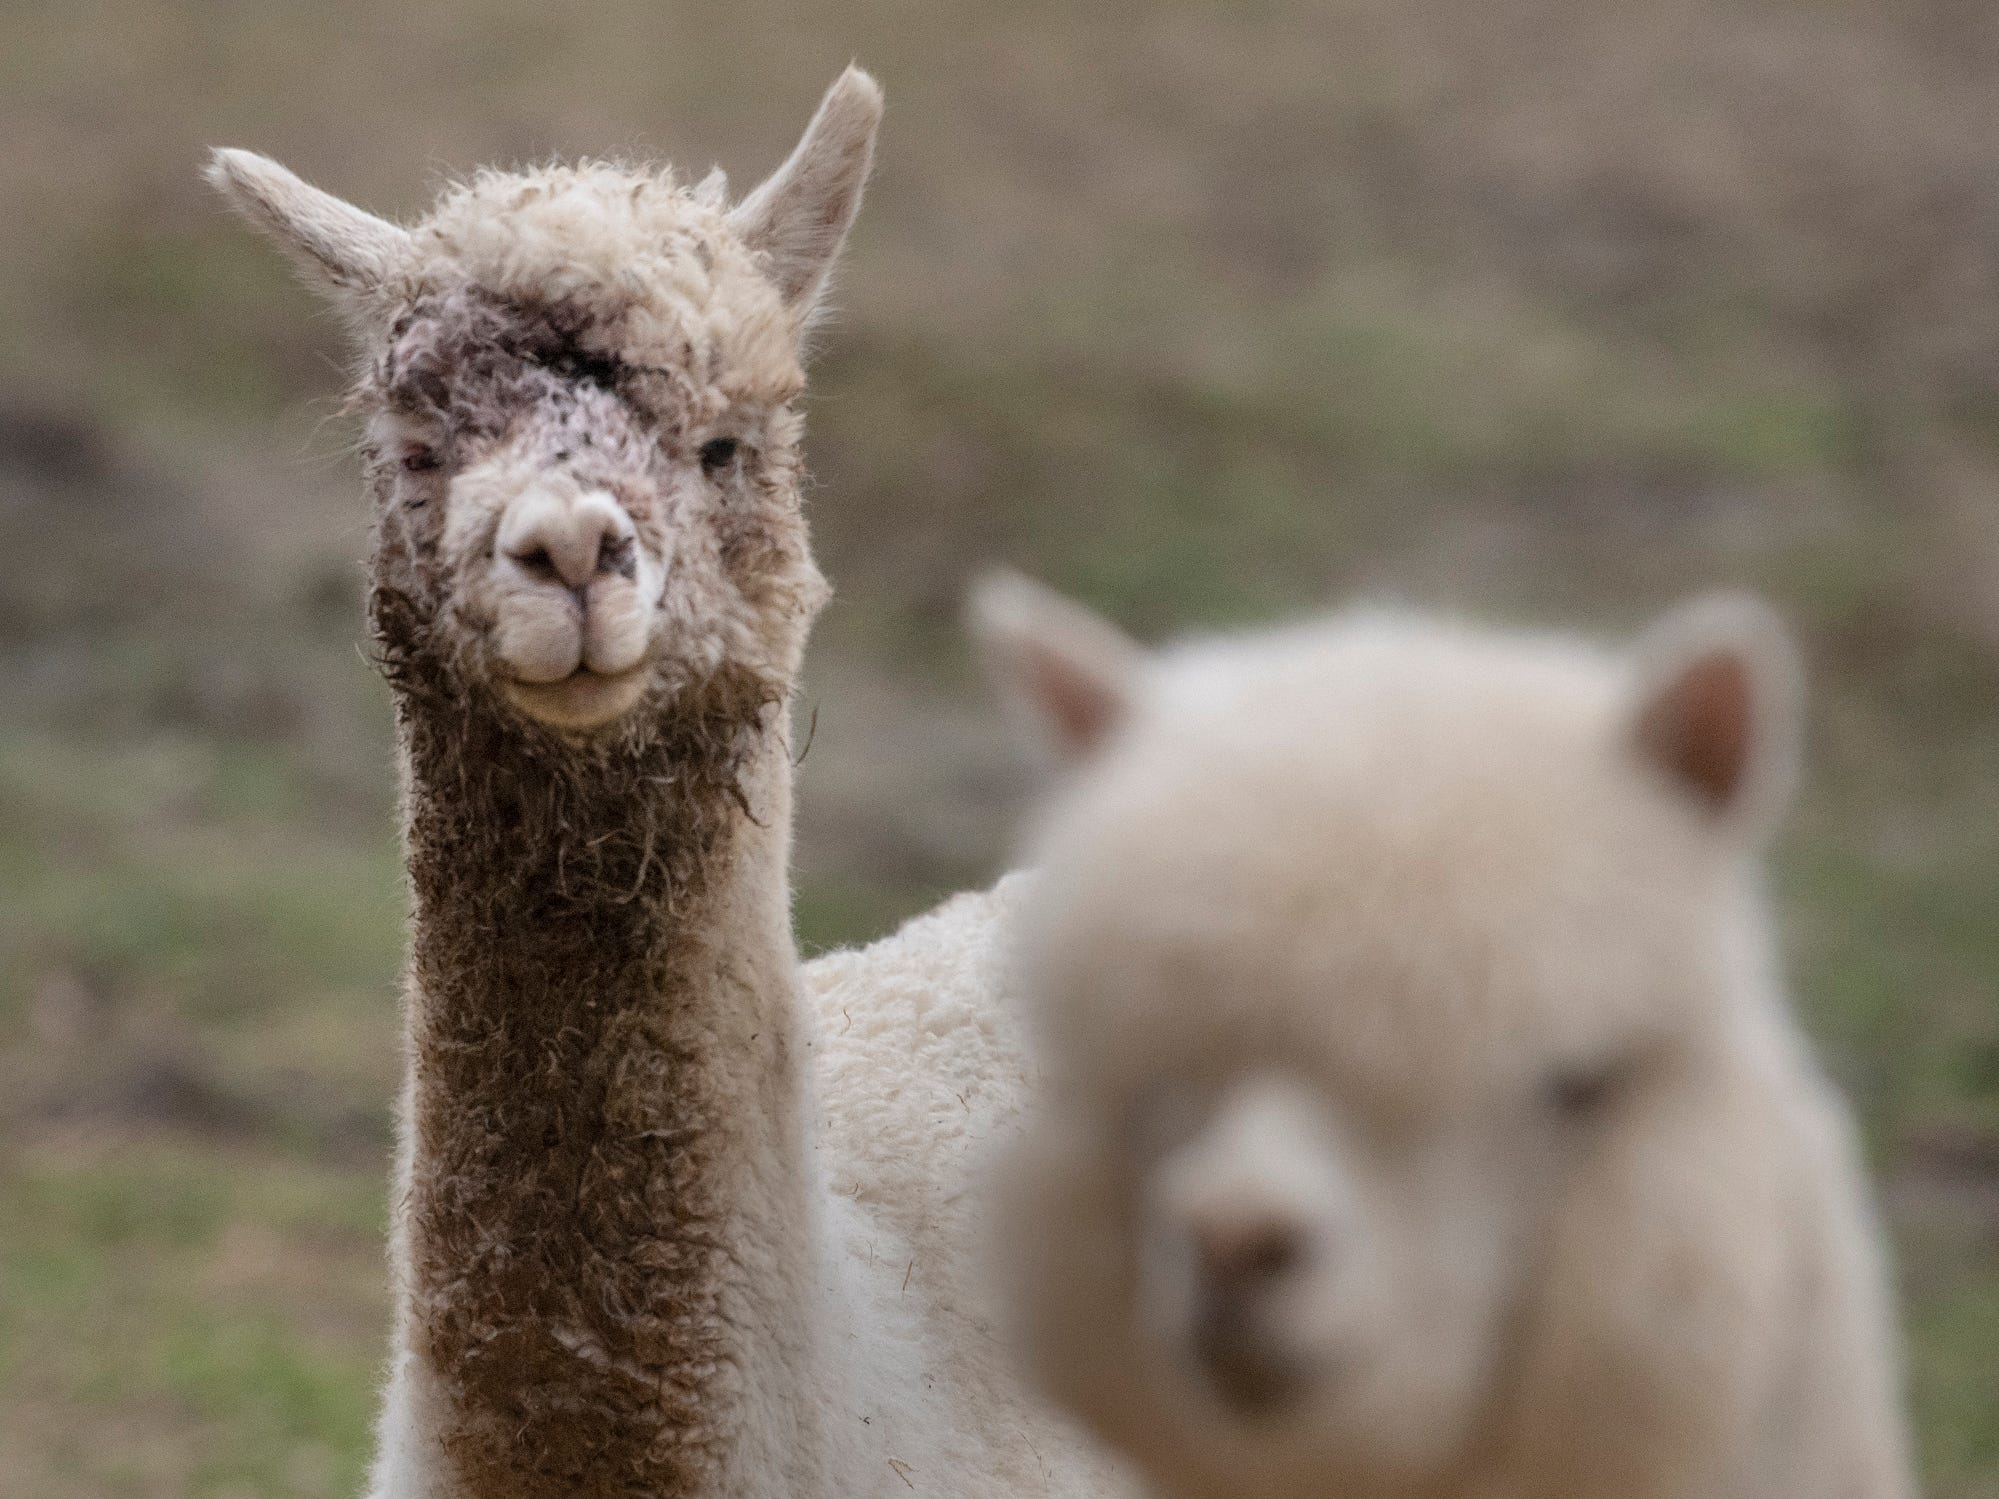 The alpaca at left survived after its face was mauled at a farm in Jackson Township where several alpacas were killed in a dog attack.